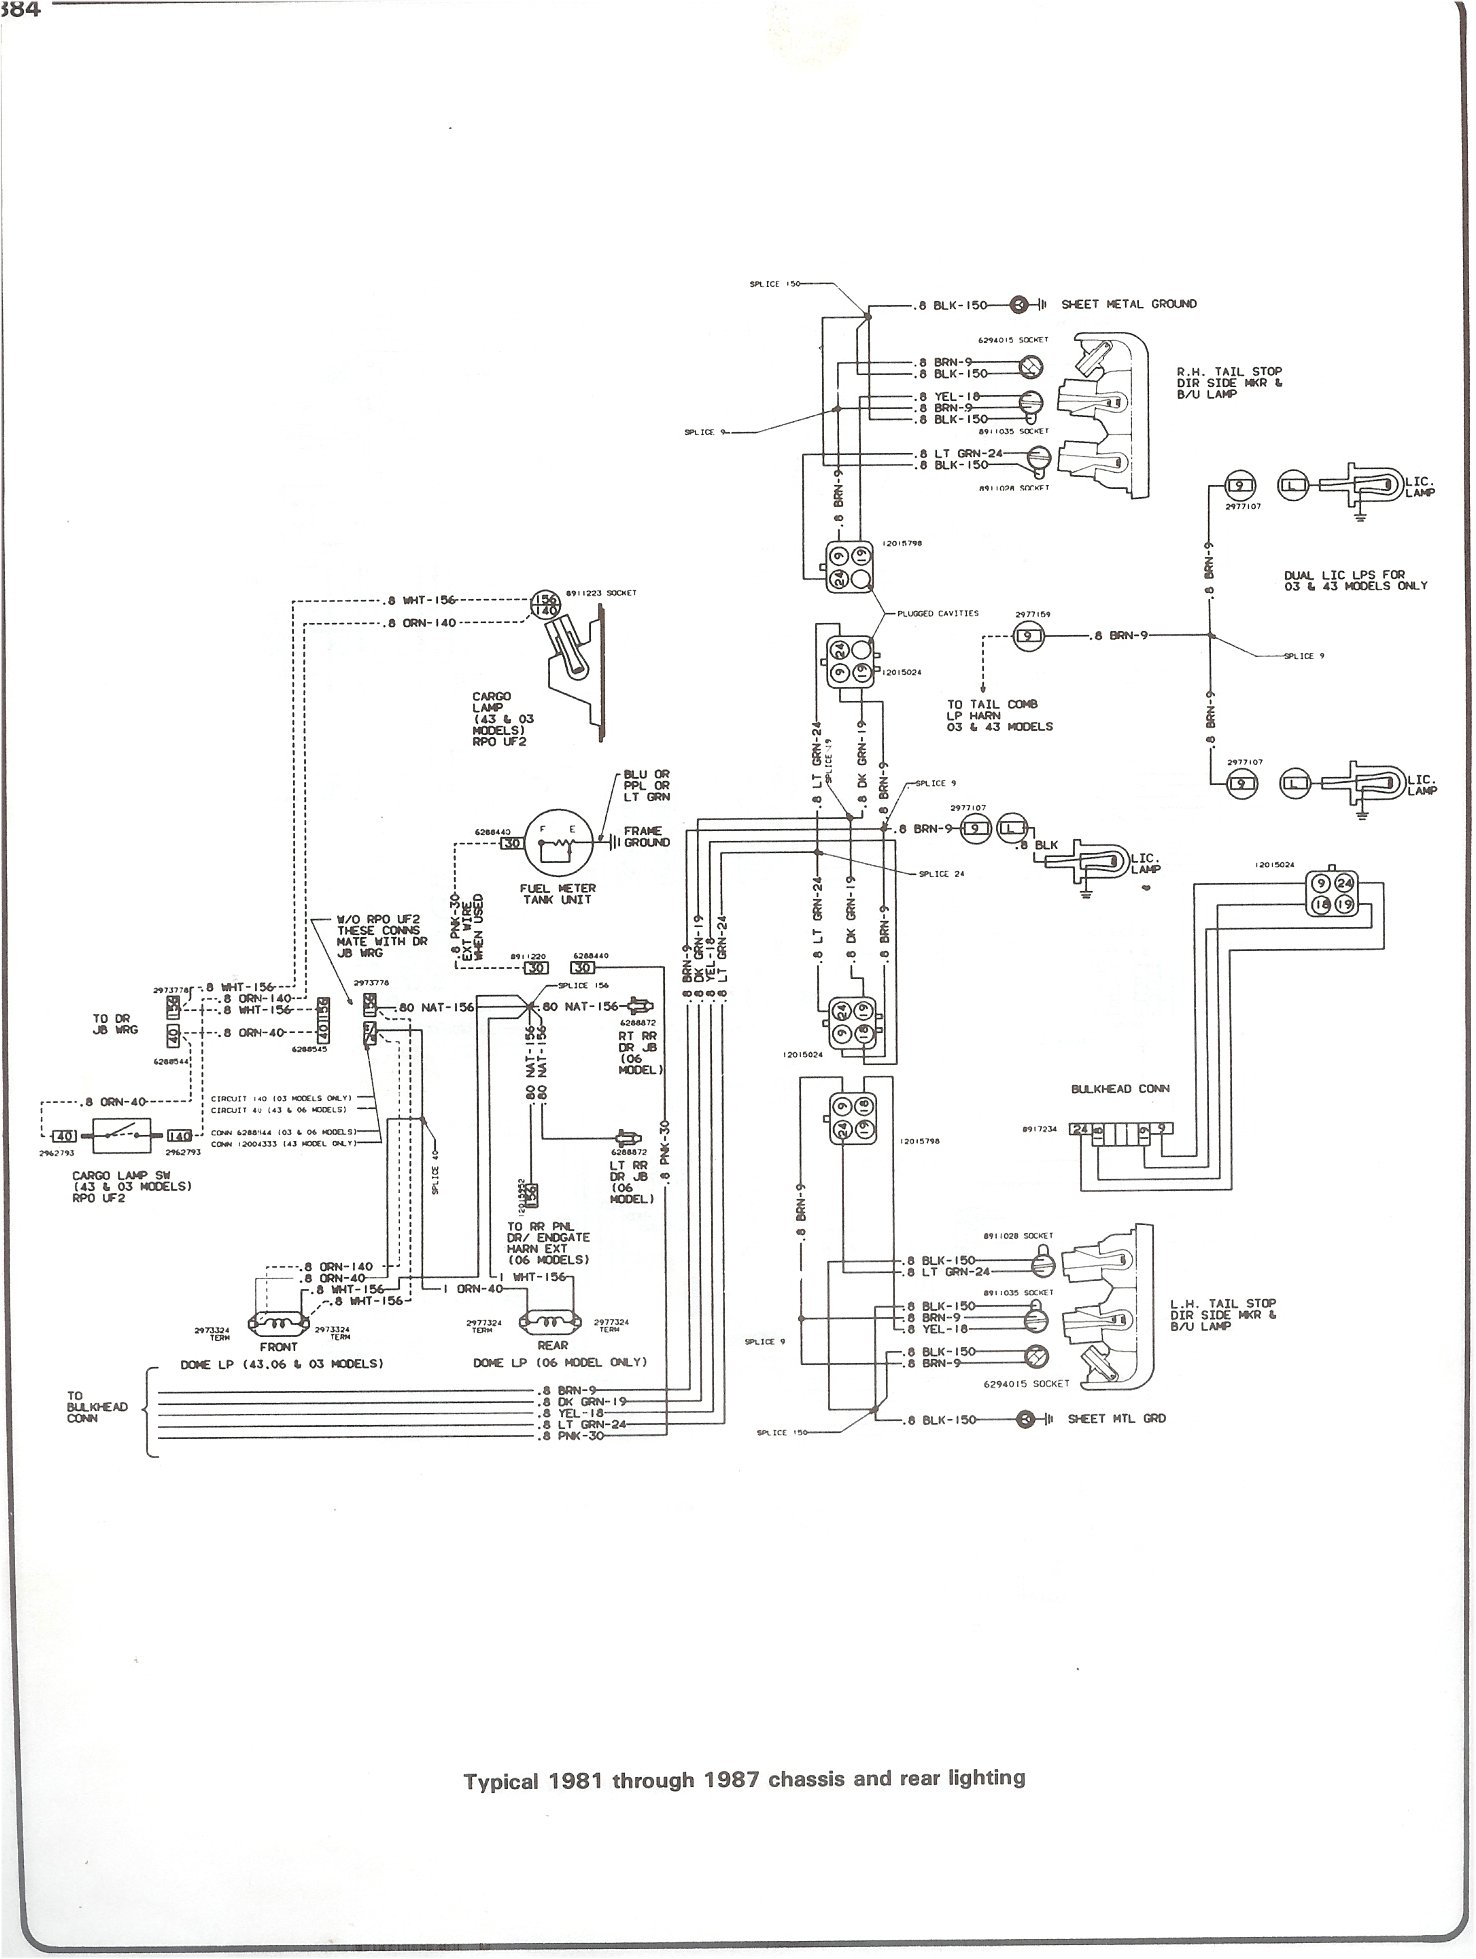 81 87_chass_rr_light complete 73 87 wiring diagrams 1982 chevy truck fuse box diagram at gsmx.co